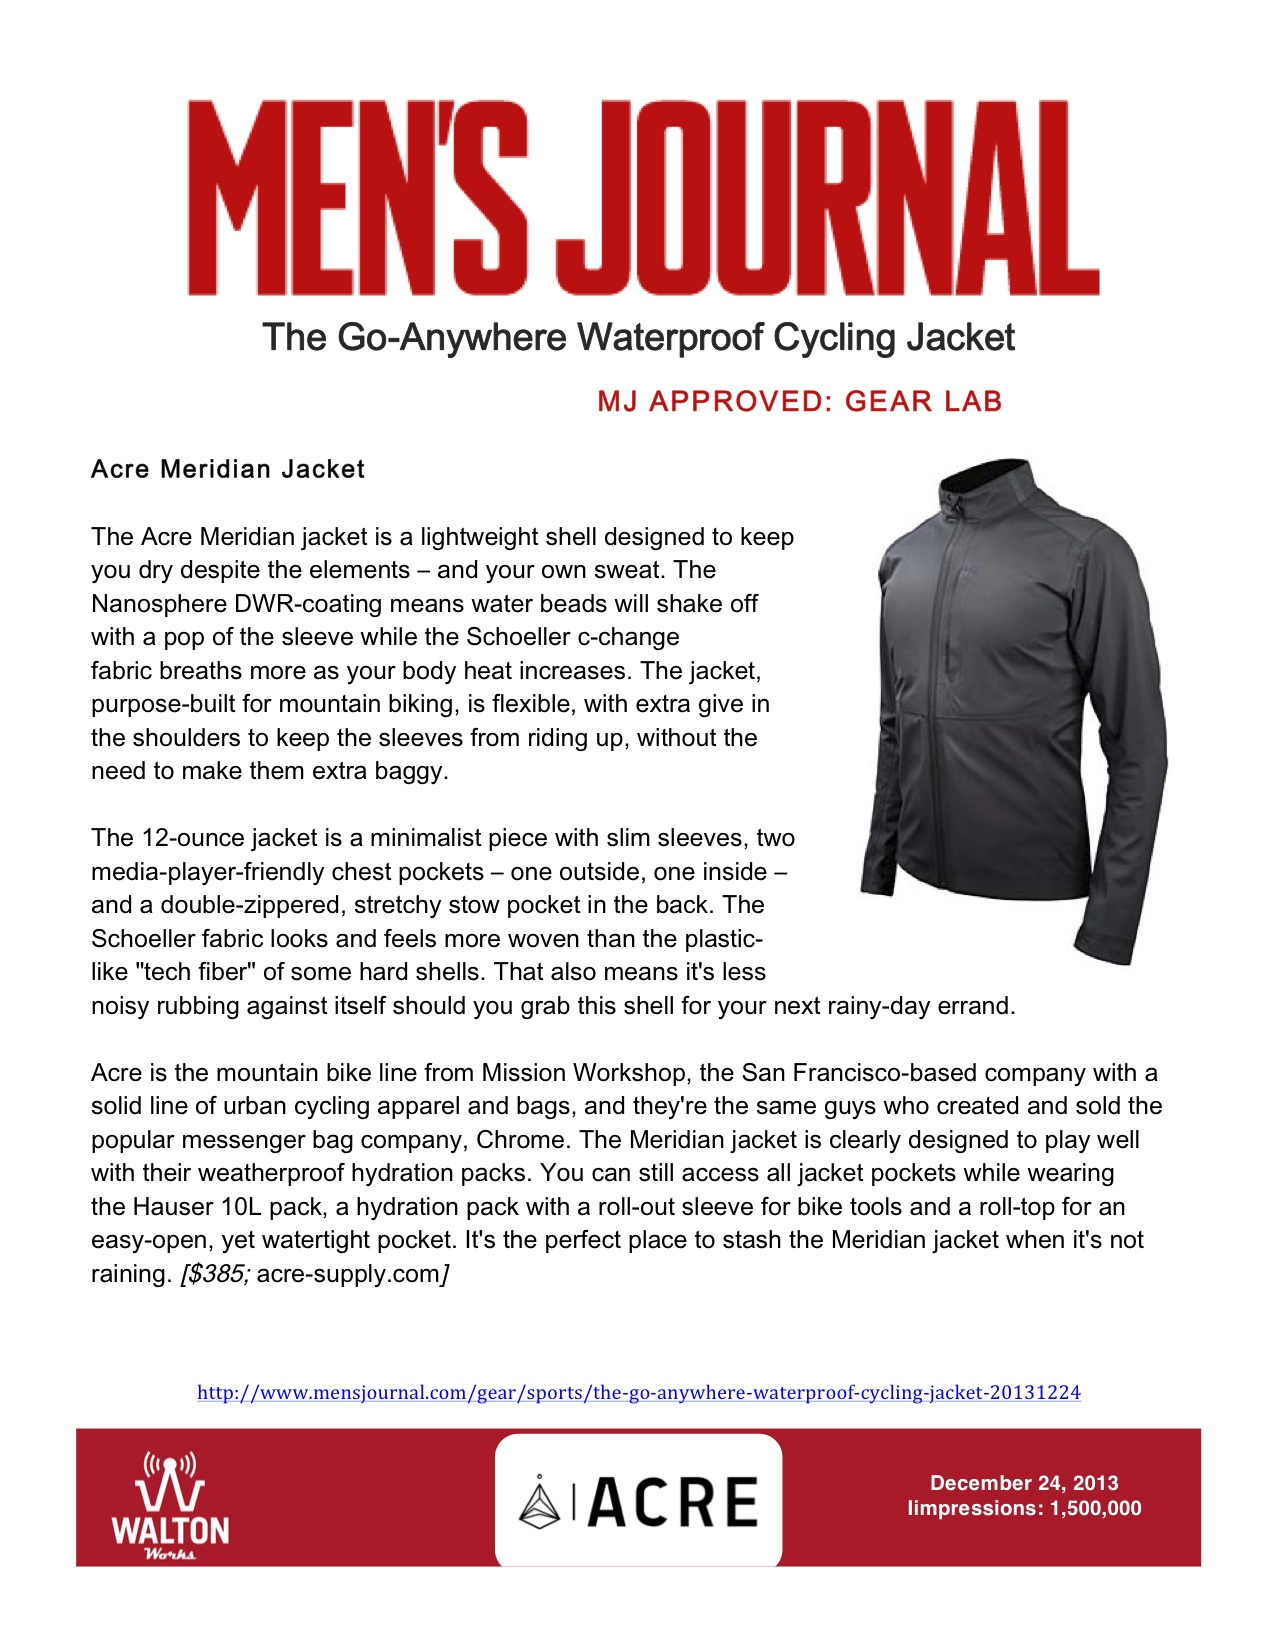 ACRE_MensJournal_Meridian_Jan14.jpg